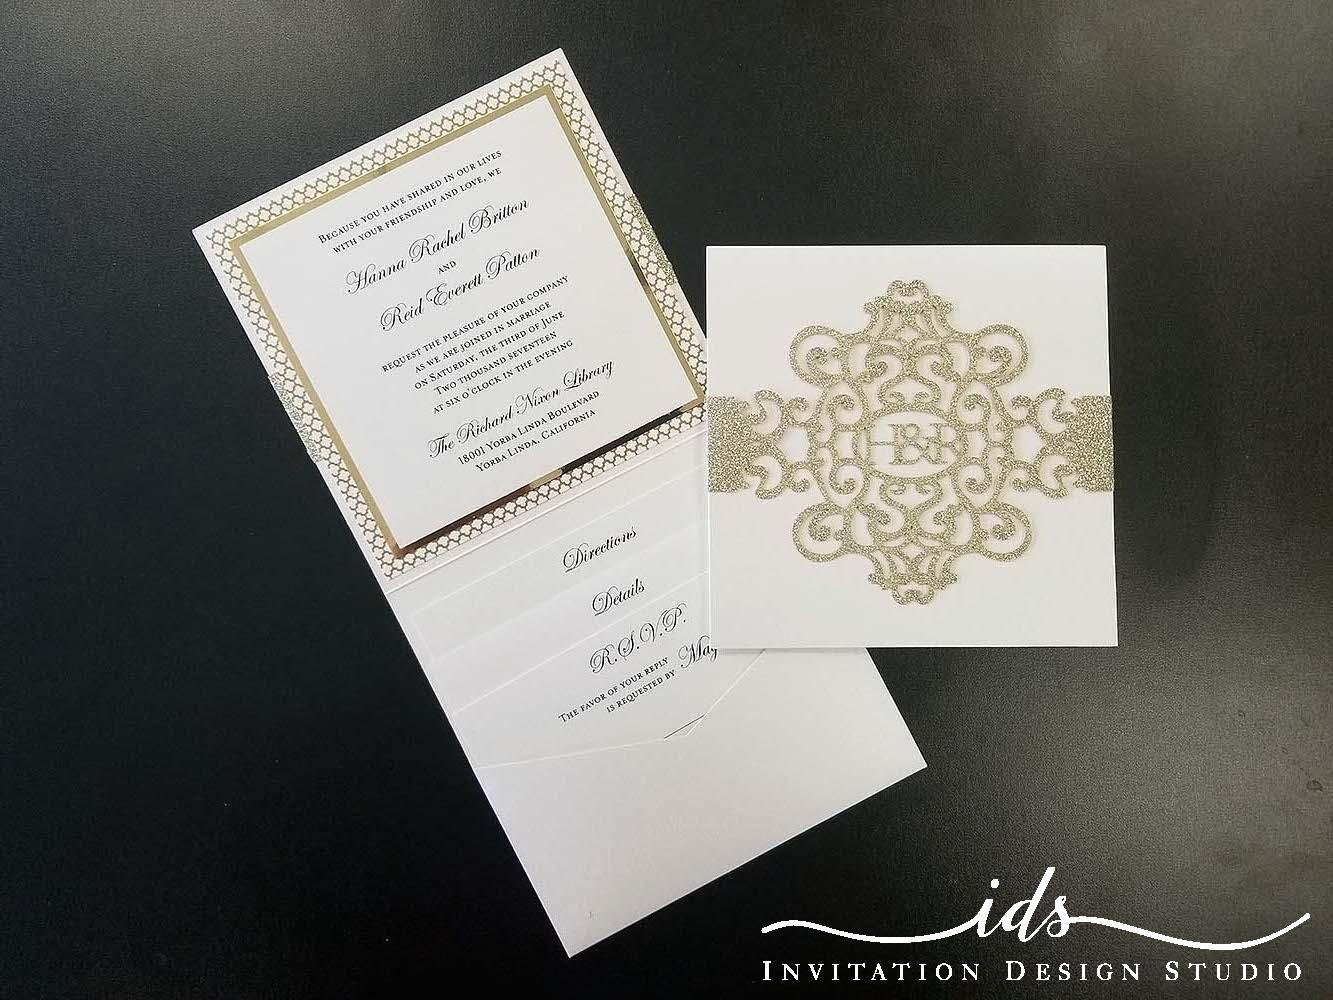 Invitation Gallery | Invitation Design Studio